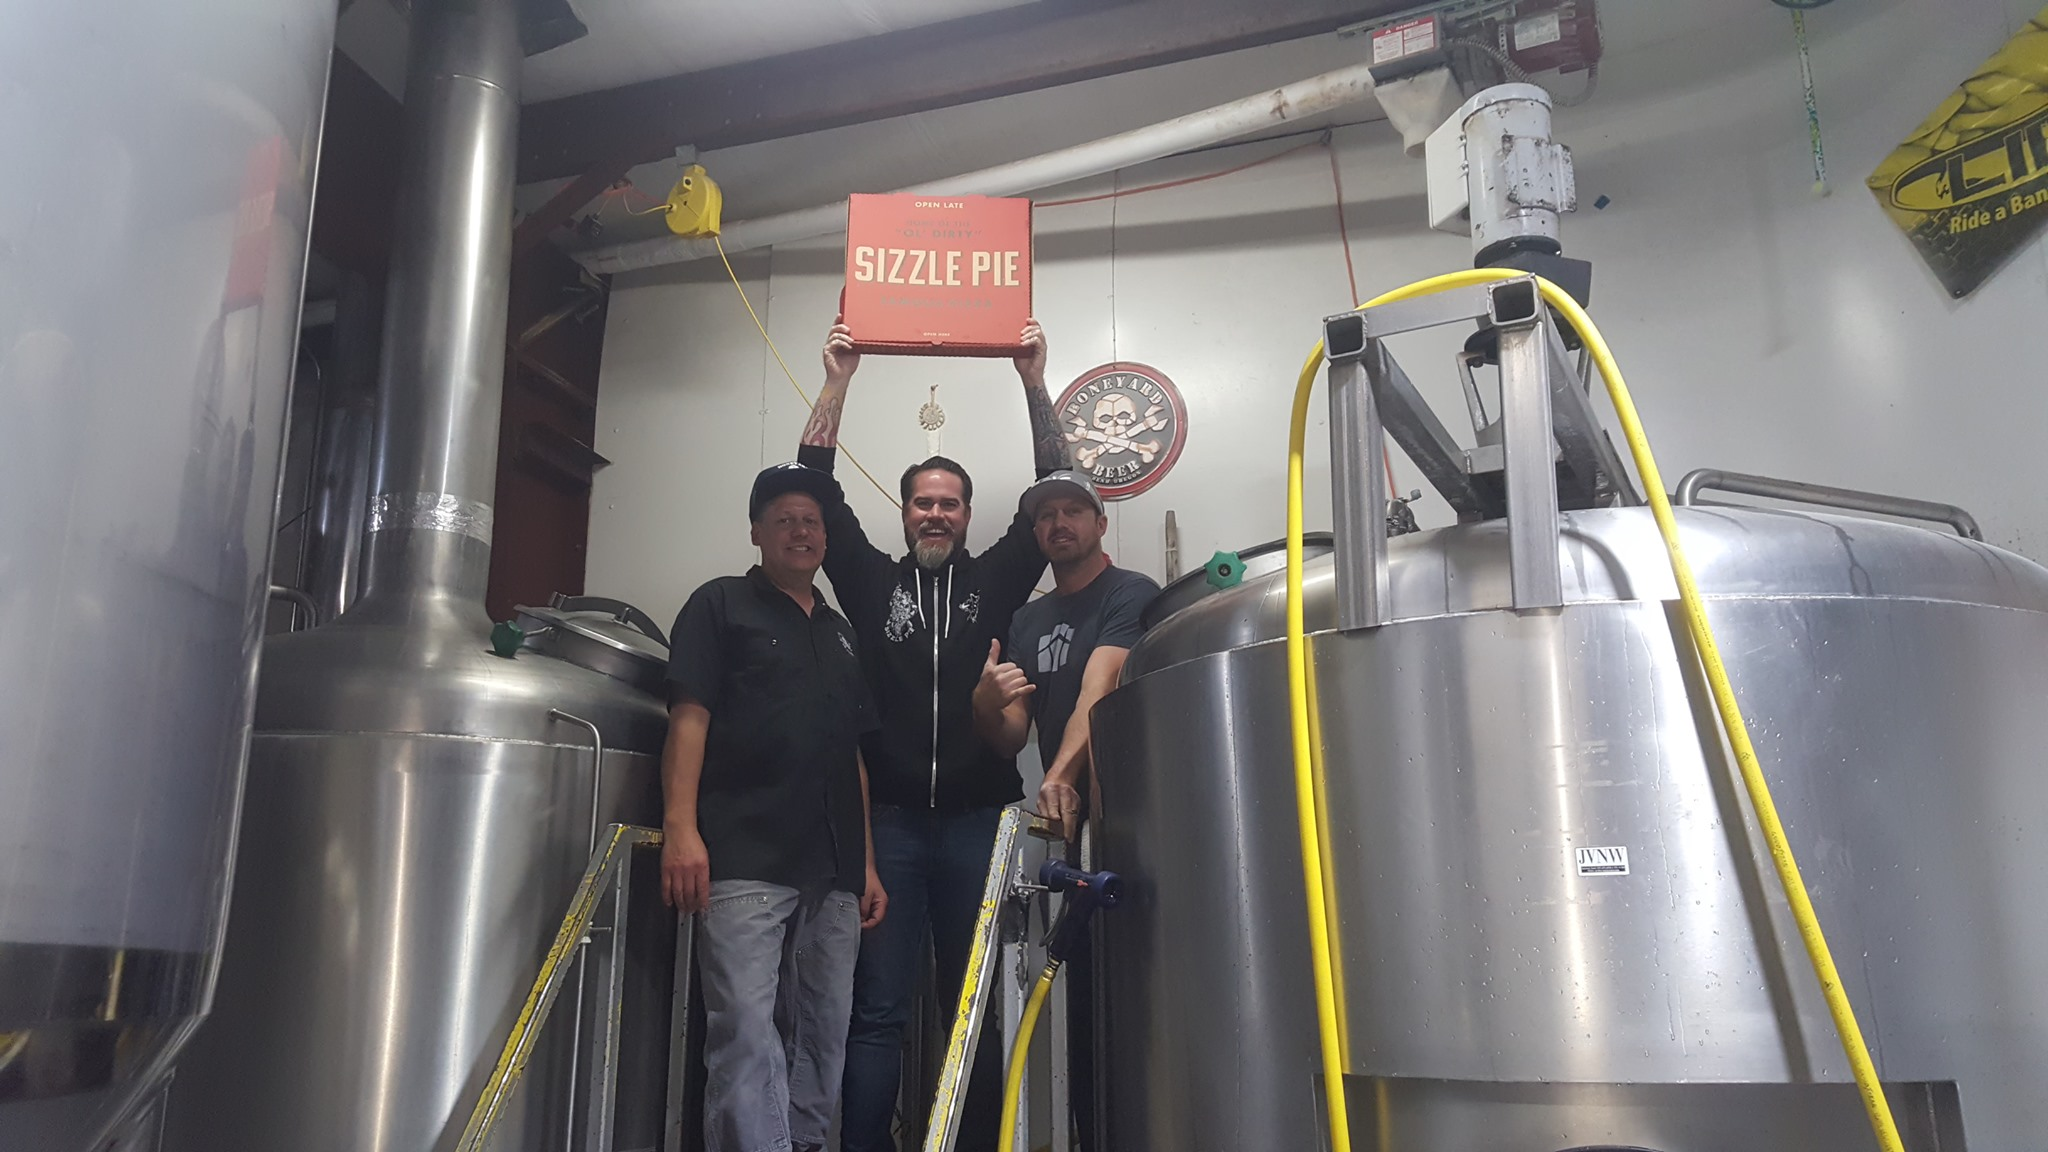 image of brewing Rest In Pizza IPA with Sizzle Pie courtesy of Boneyard Beer